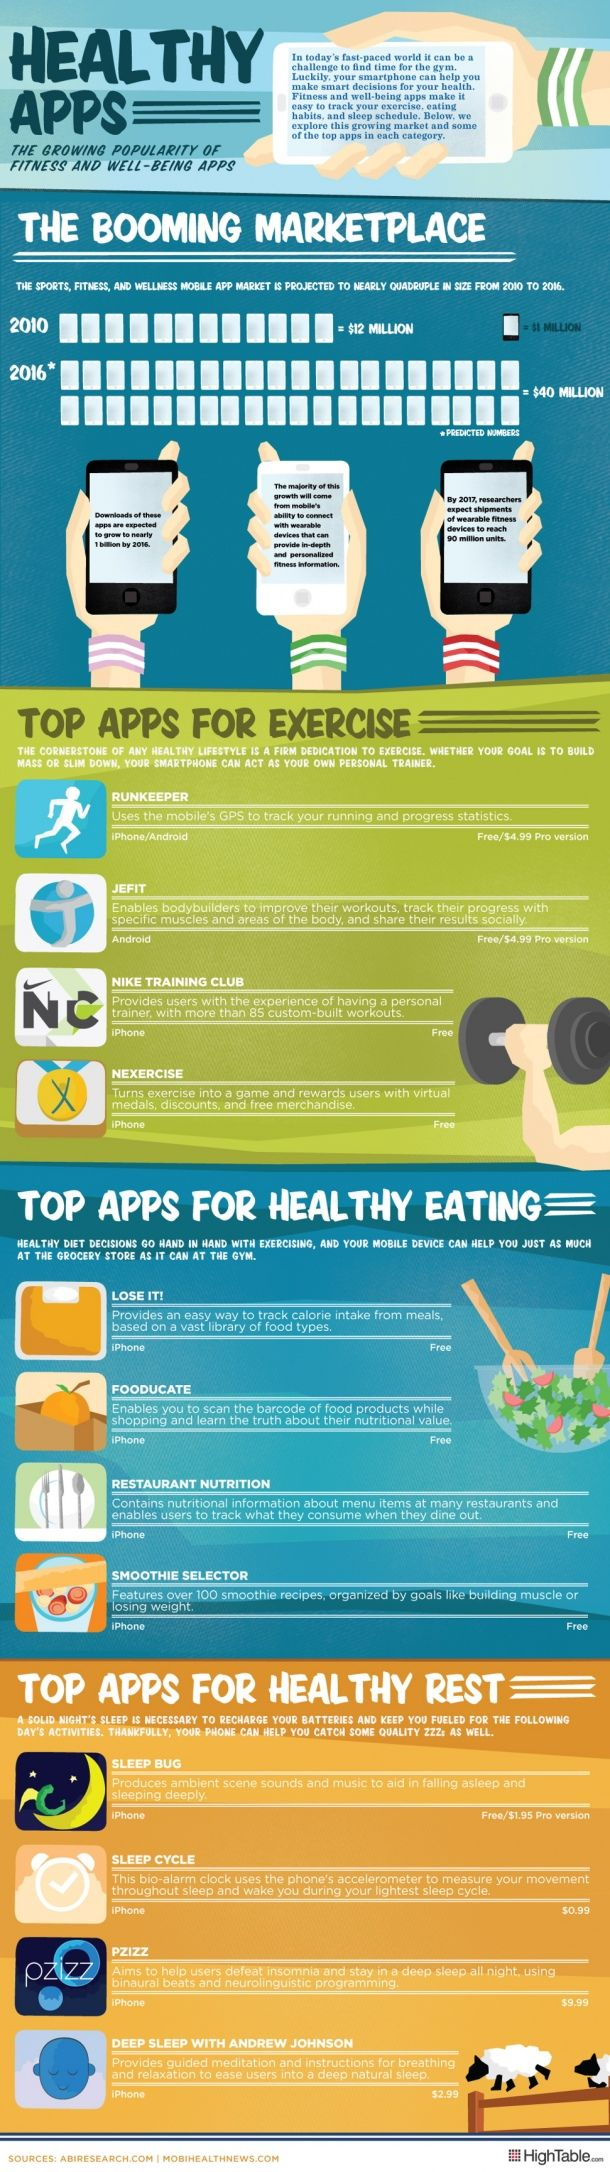 #Healthy #apps!